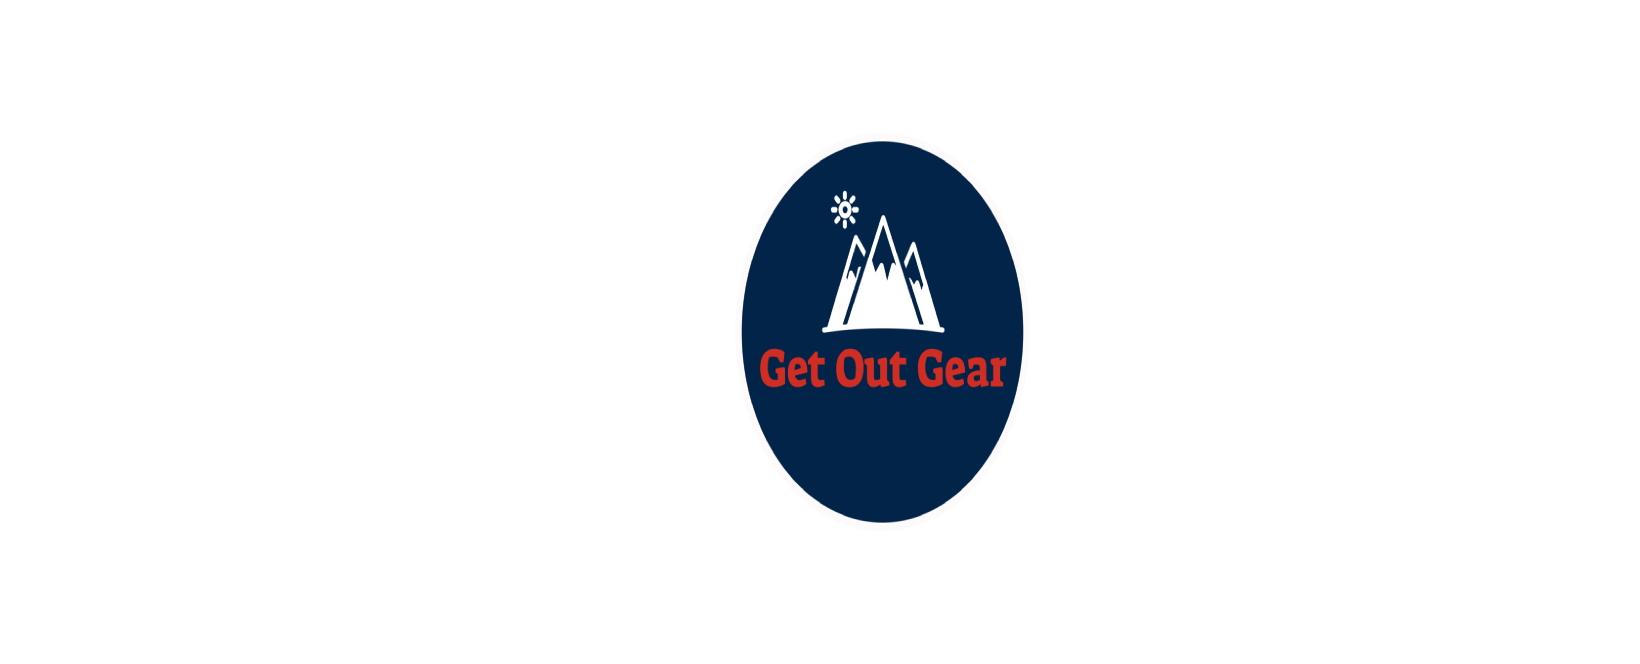 Get Out Gear Discount Code 2021